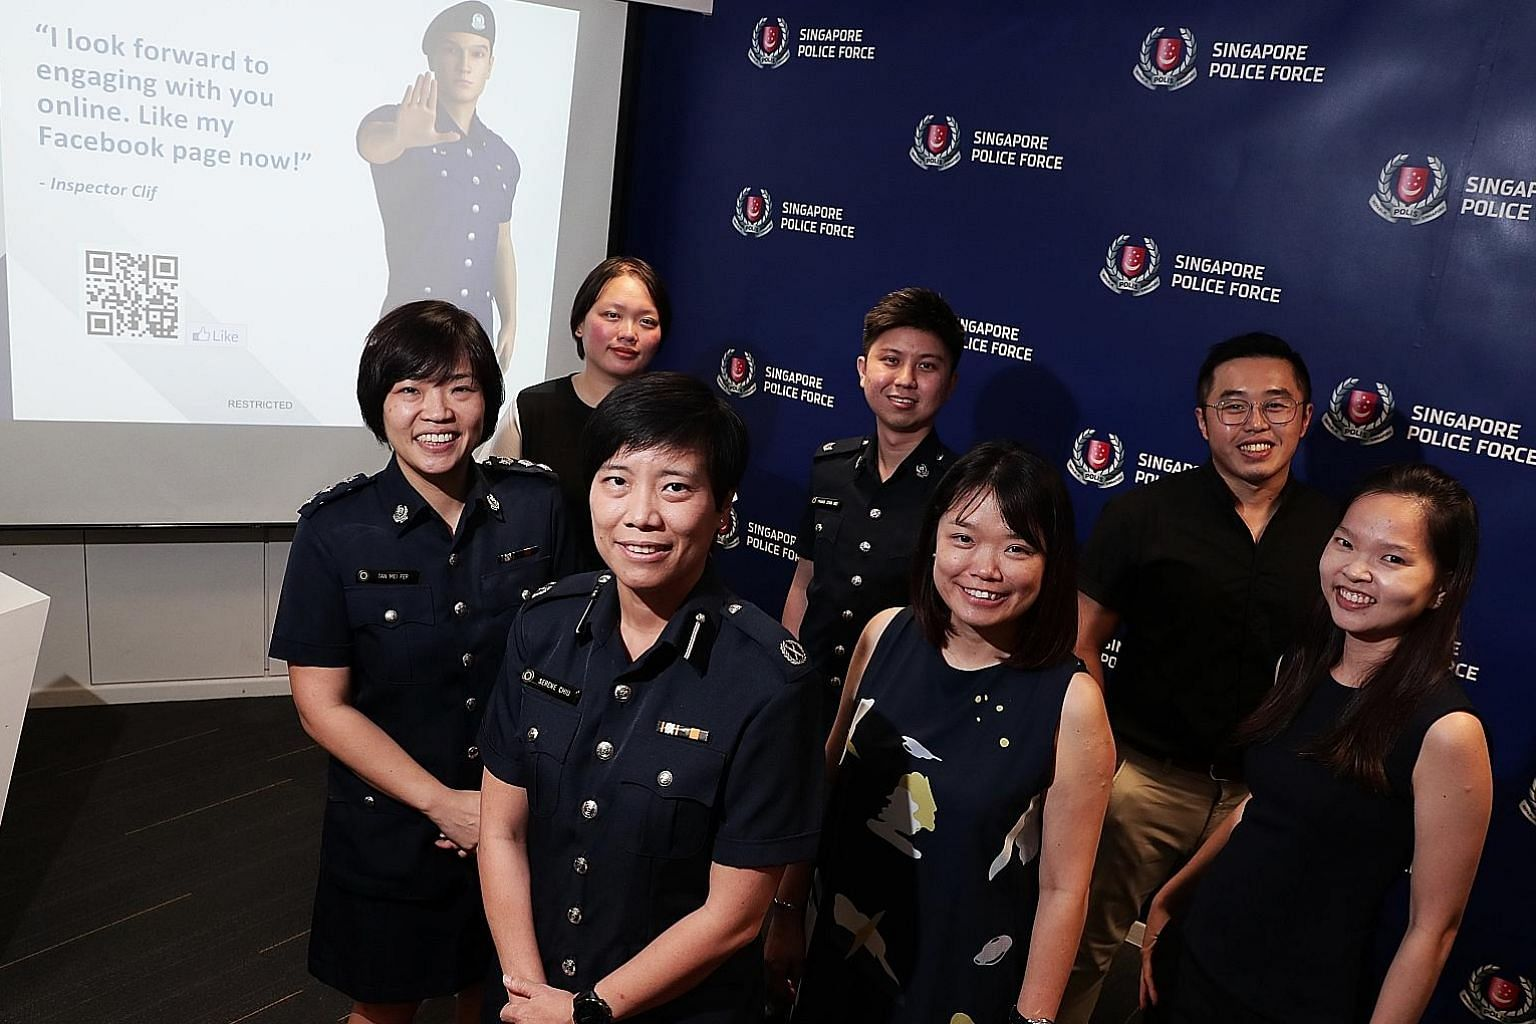 Deputy Assistant Commissioner Serene Chiu (second from left), with members of the New Media Team from the Singapore Police Force's Public Affairs Department, who are involved in the development of the online police avatar, Inspector Clif (far right).